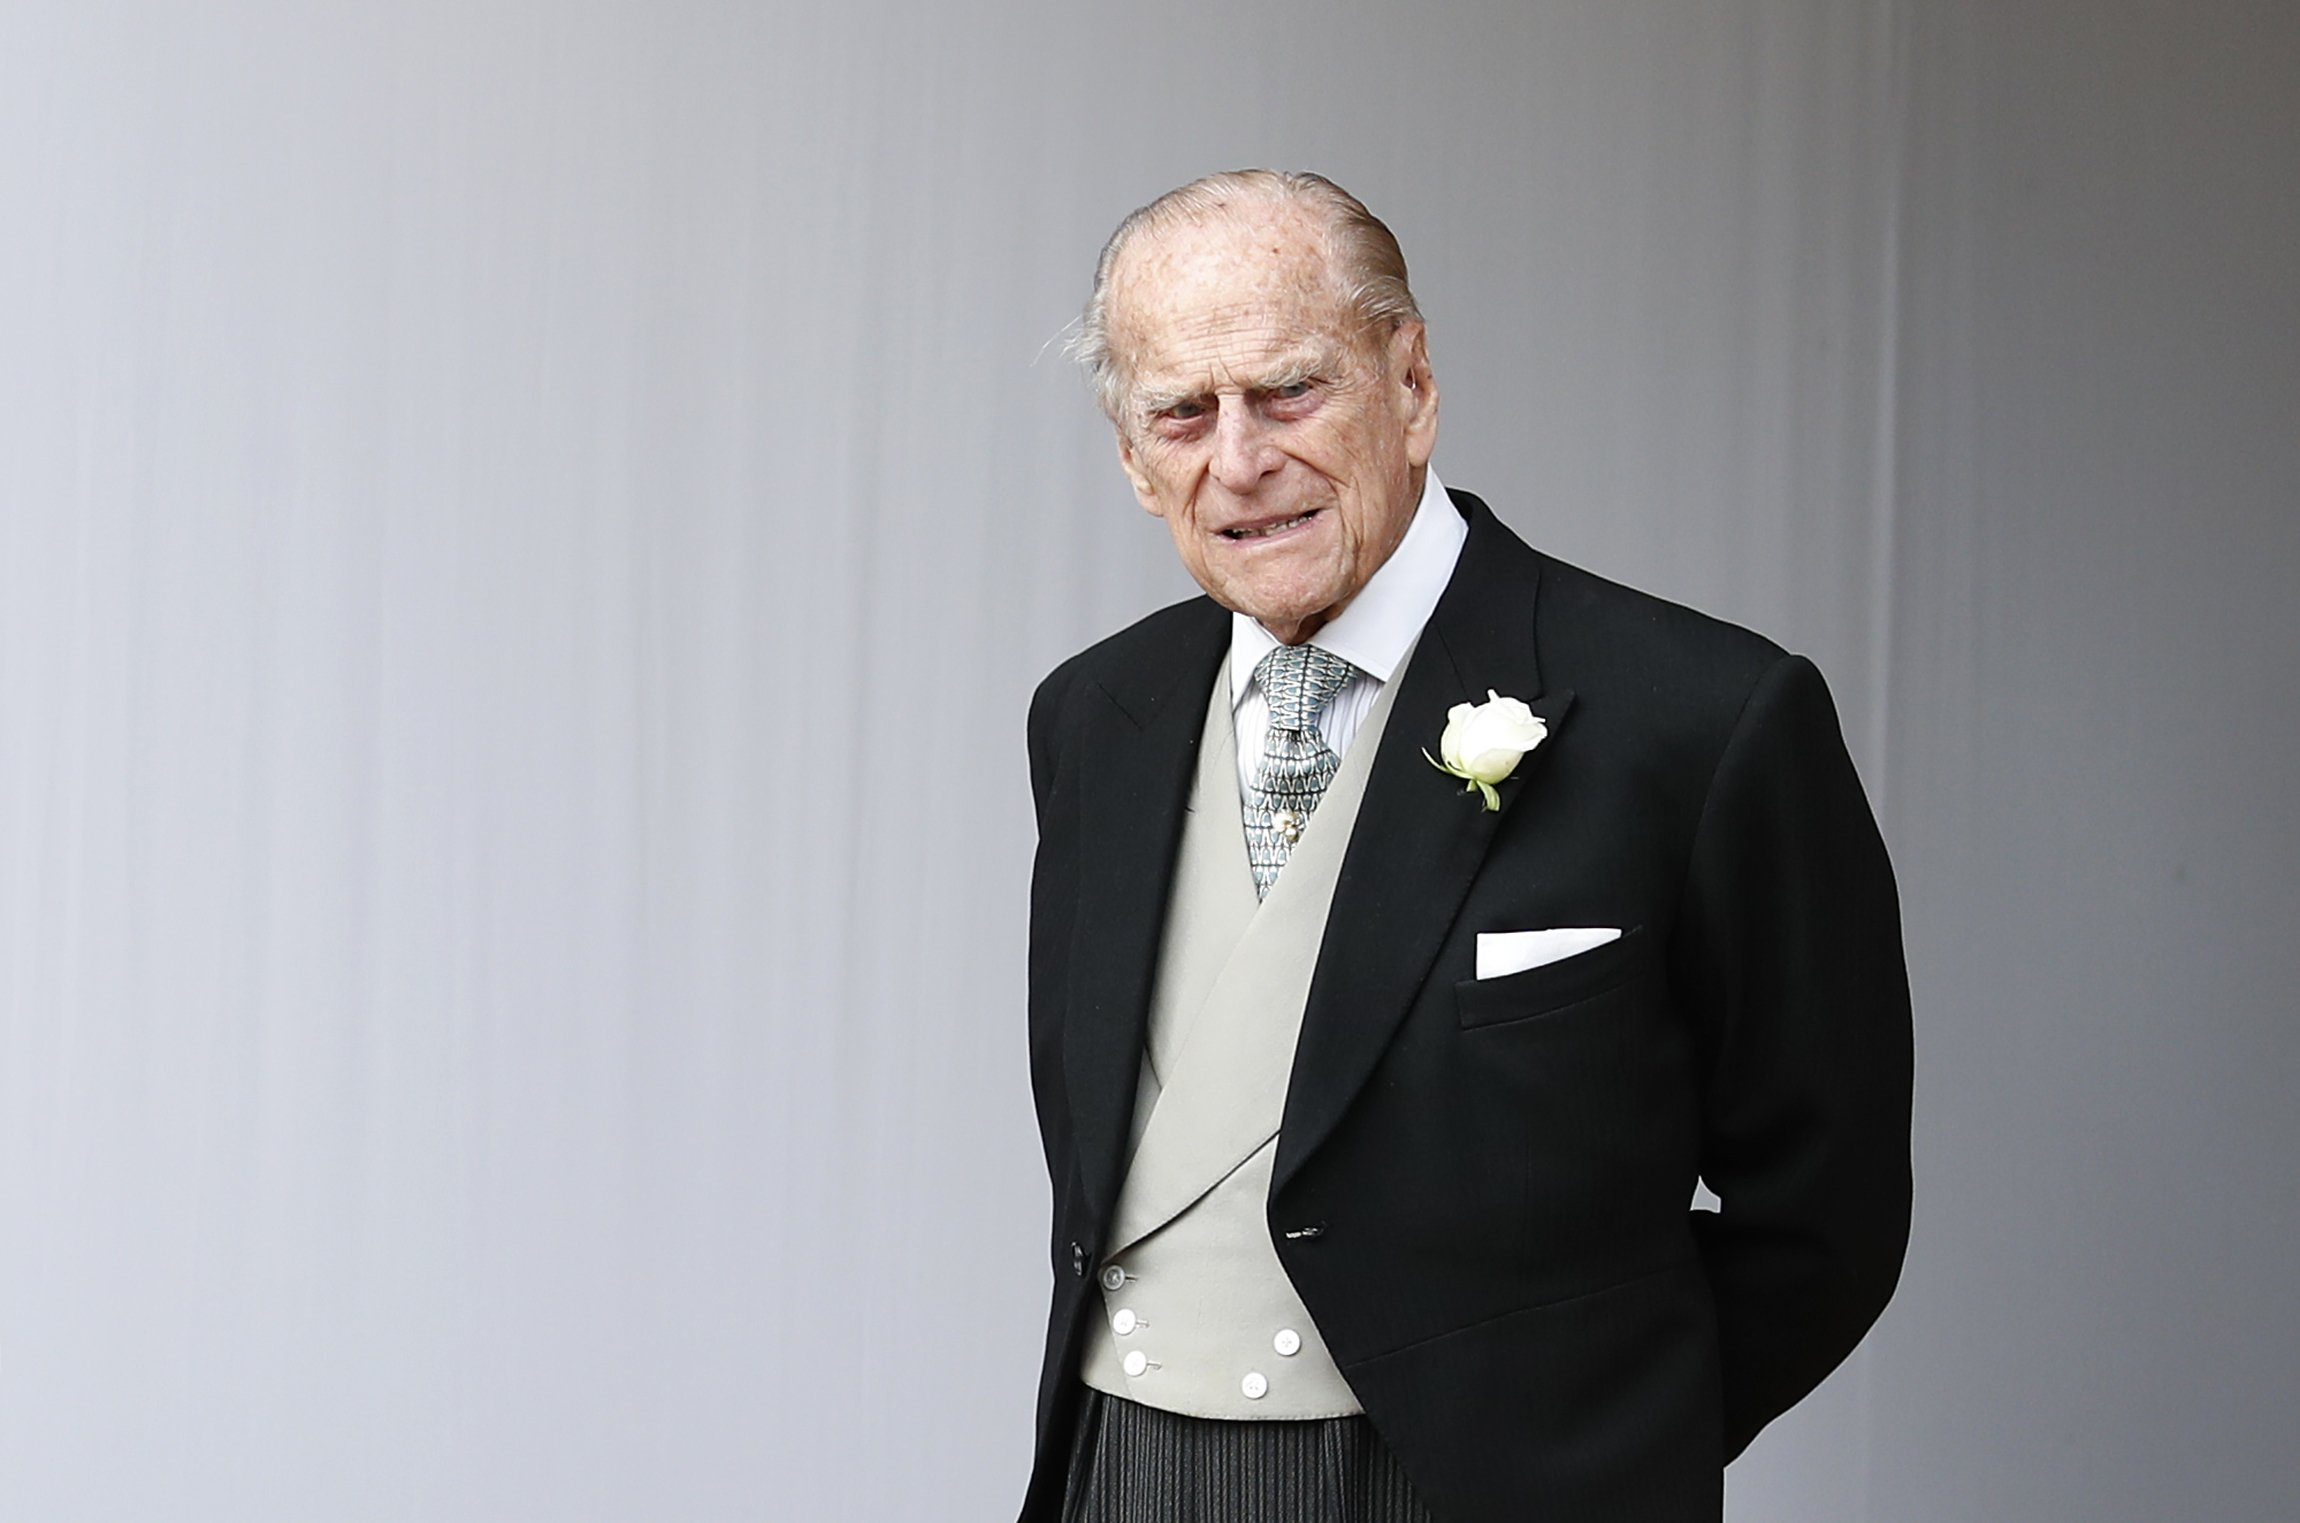 Prince Philip attends the wedding of Princess Eugenie of York to Jack Brooksbank at St. George's Chapel on October 12, 2018 in Windsor, England | Photo: Getty Images